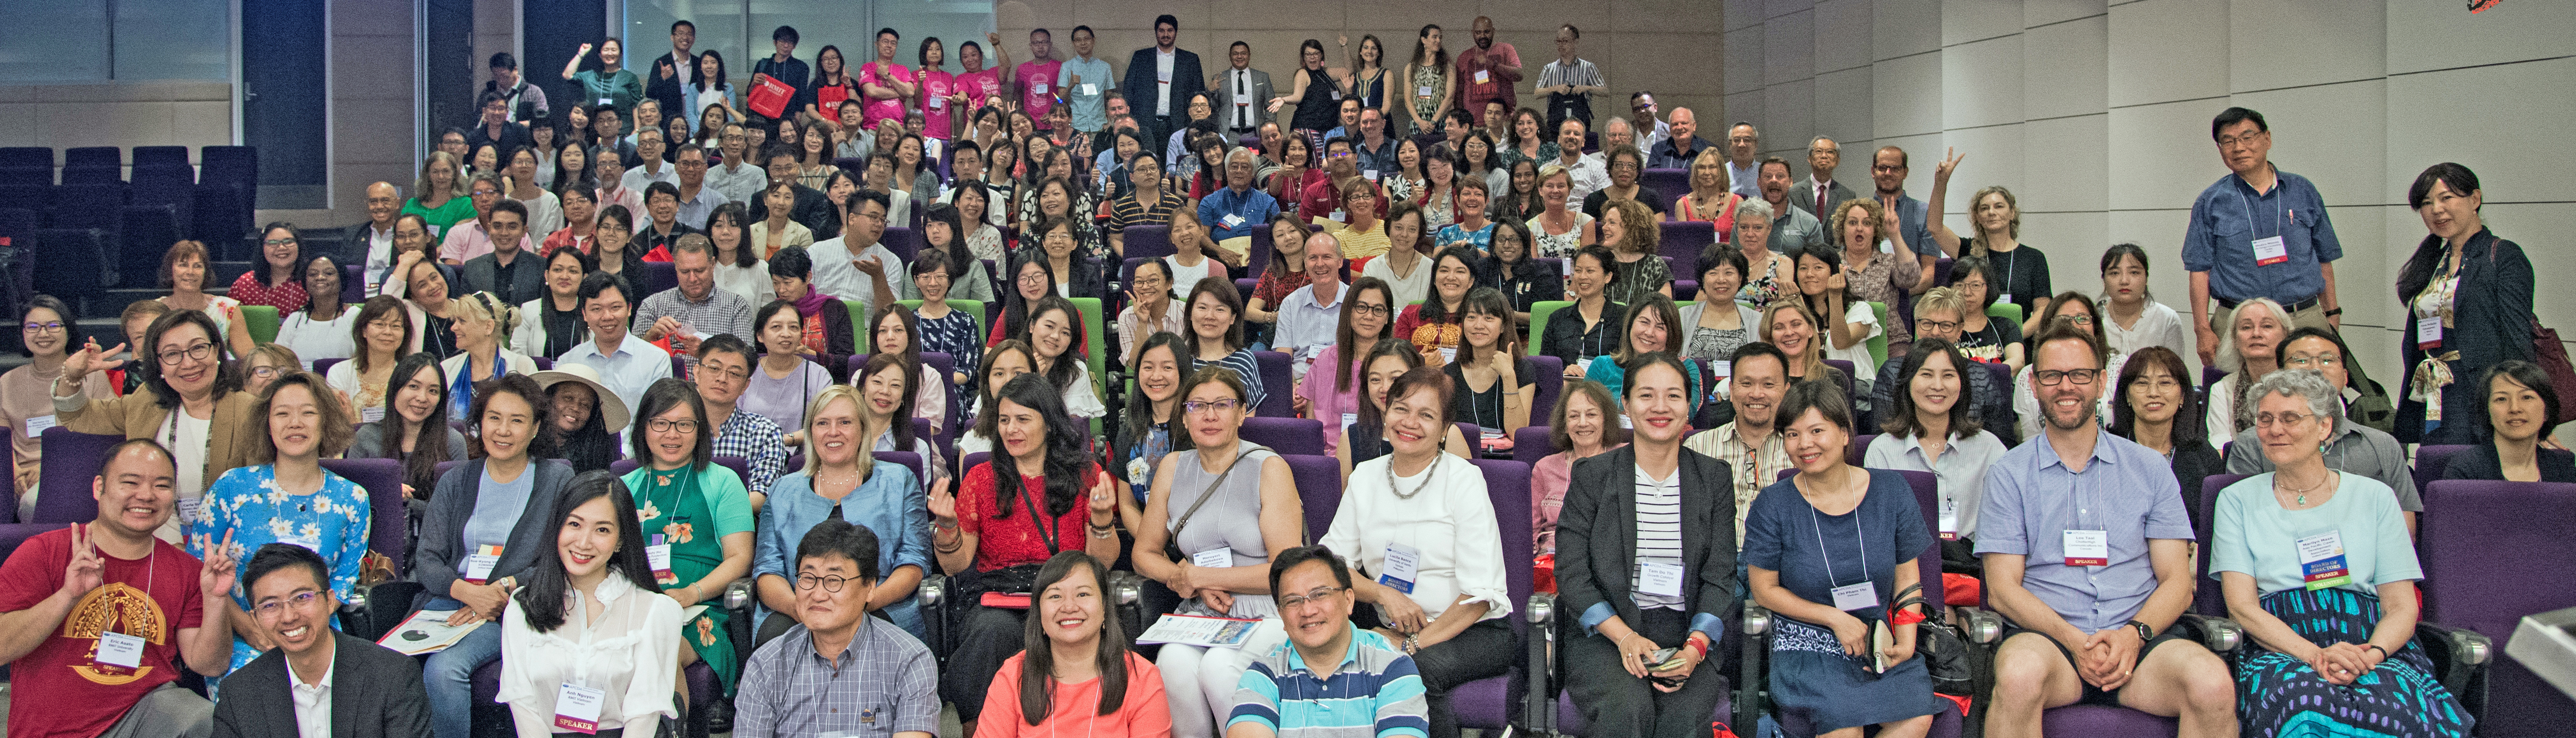 Asia Pacific Career Development Association - 2019 Conference